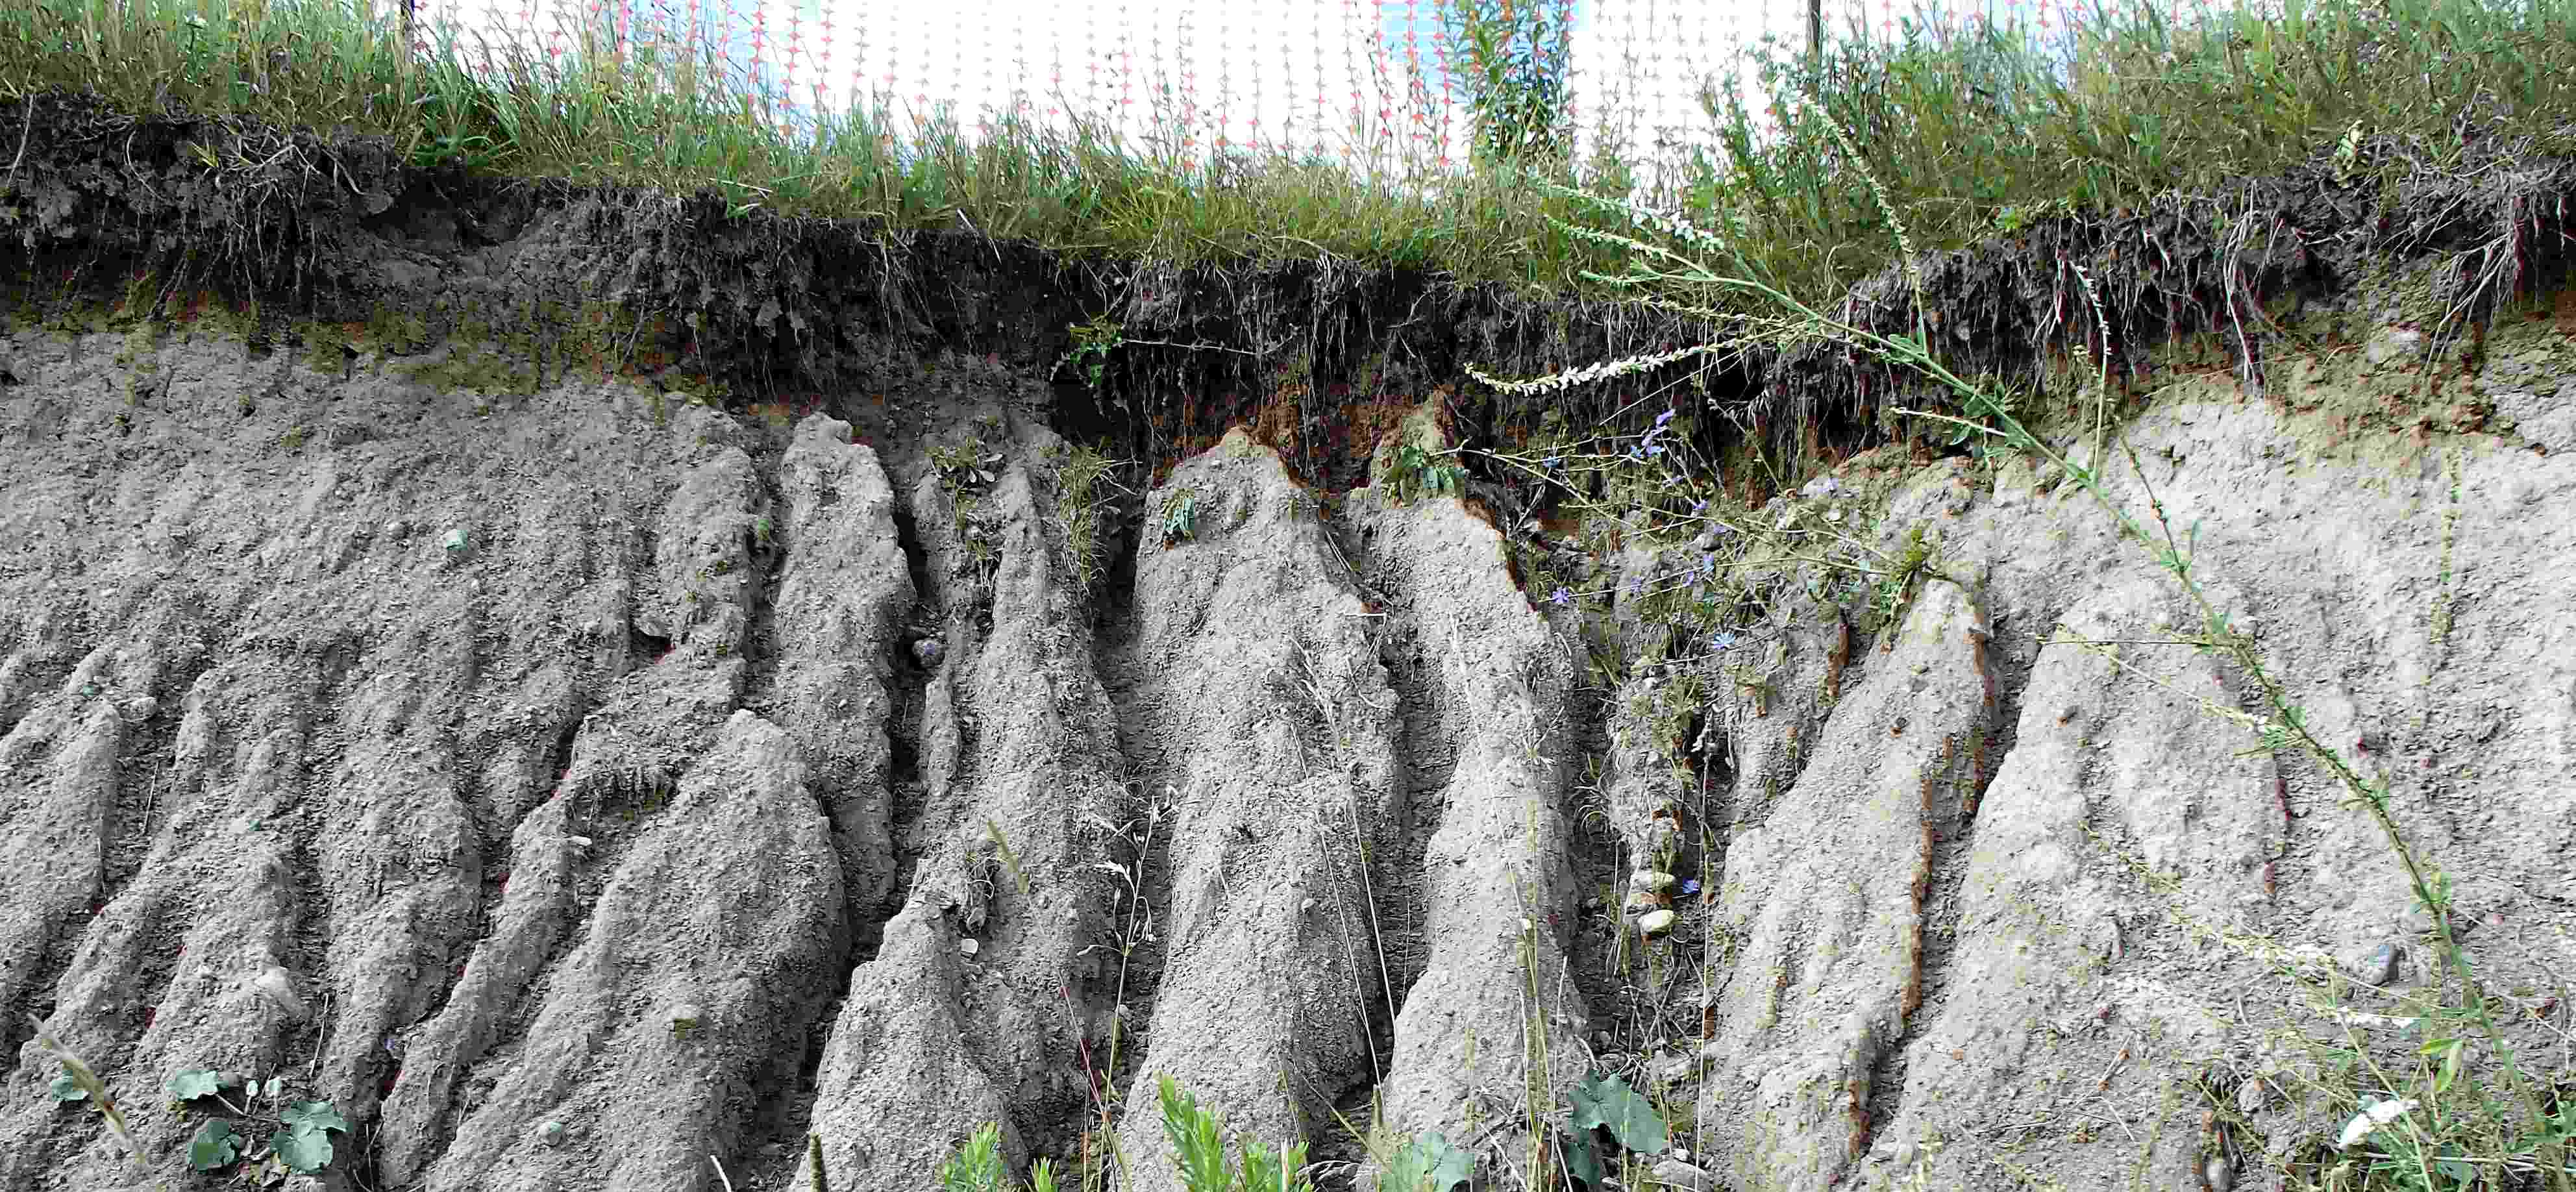 This image is a front facing view of an eroding bank where grass turf is located at the top of the bank. The face of the slope features deep furrows called rill erosion which has resulted from water runoff being directed towards the unprotected slope face.